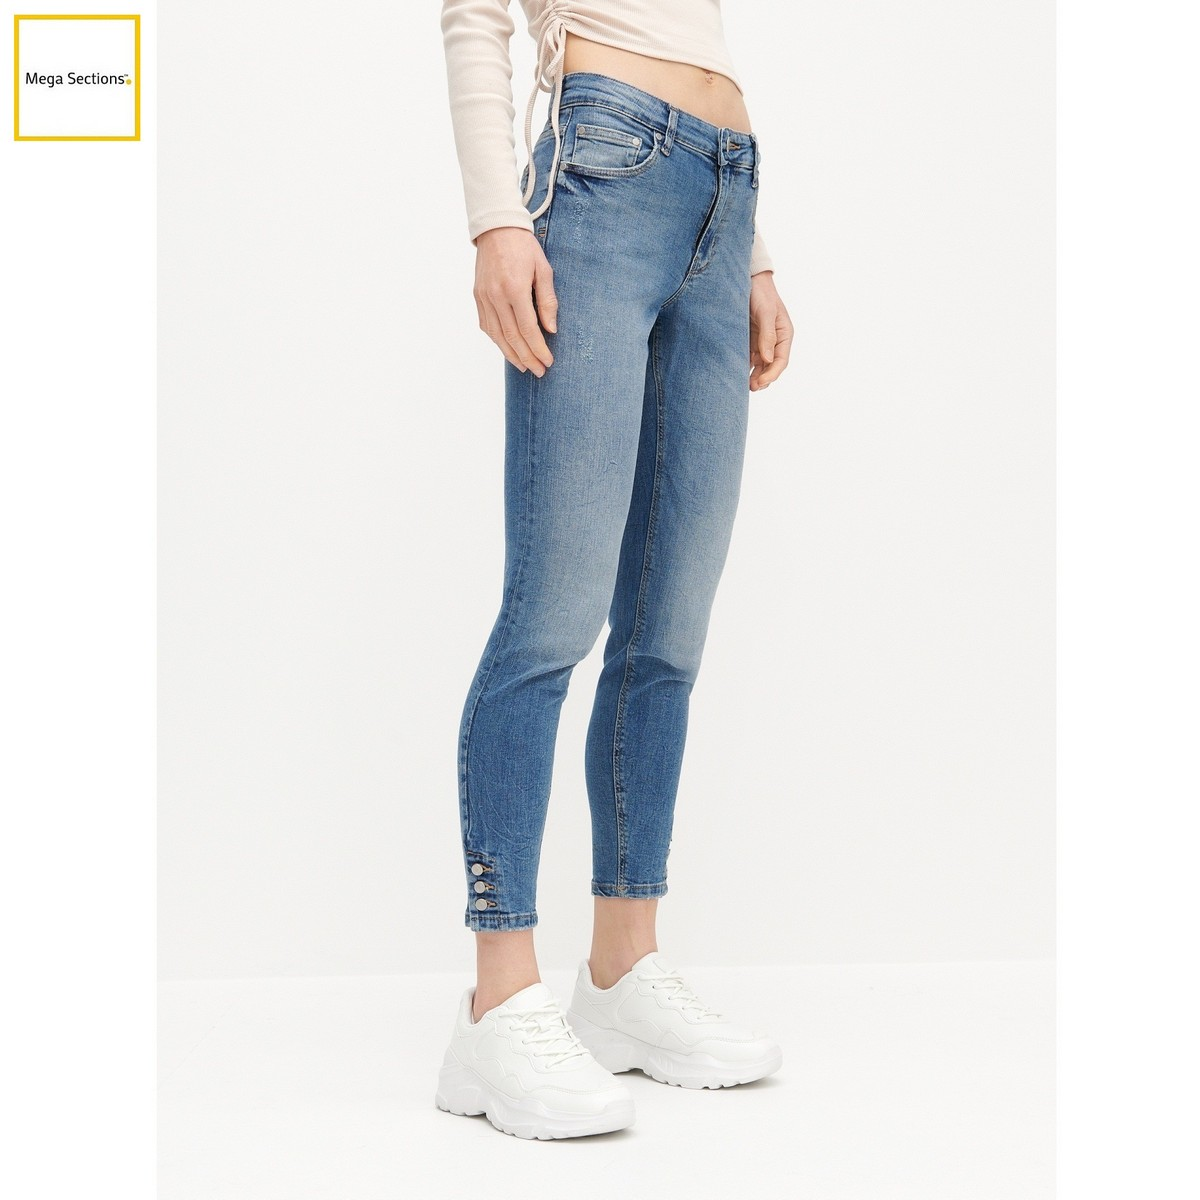 RESERVED Brand Denim Sky Blue Button Fastening Jeans For Women – Designed in Poland